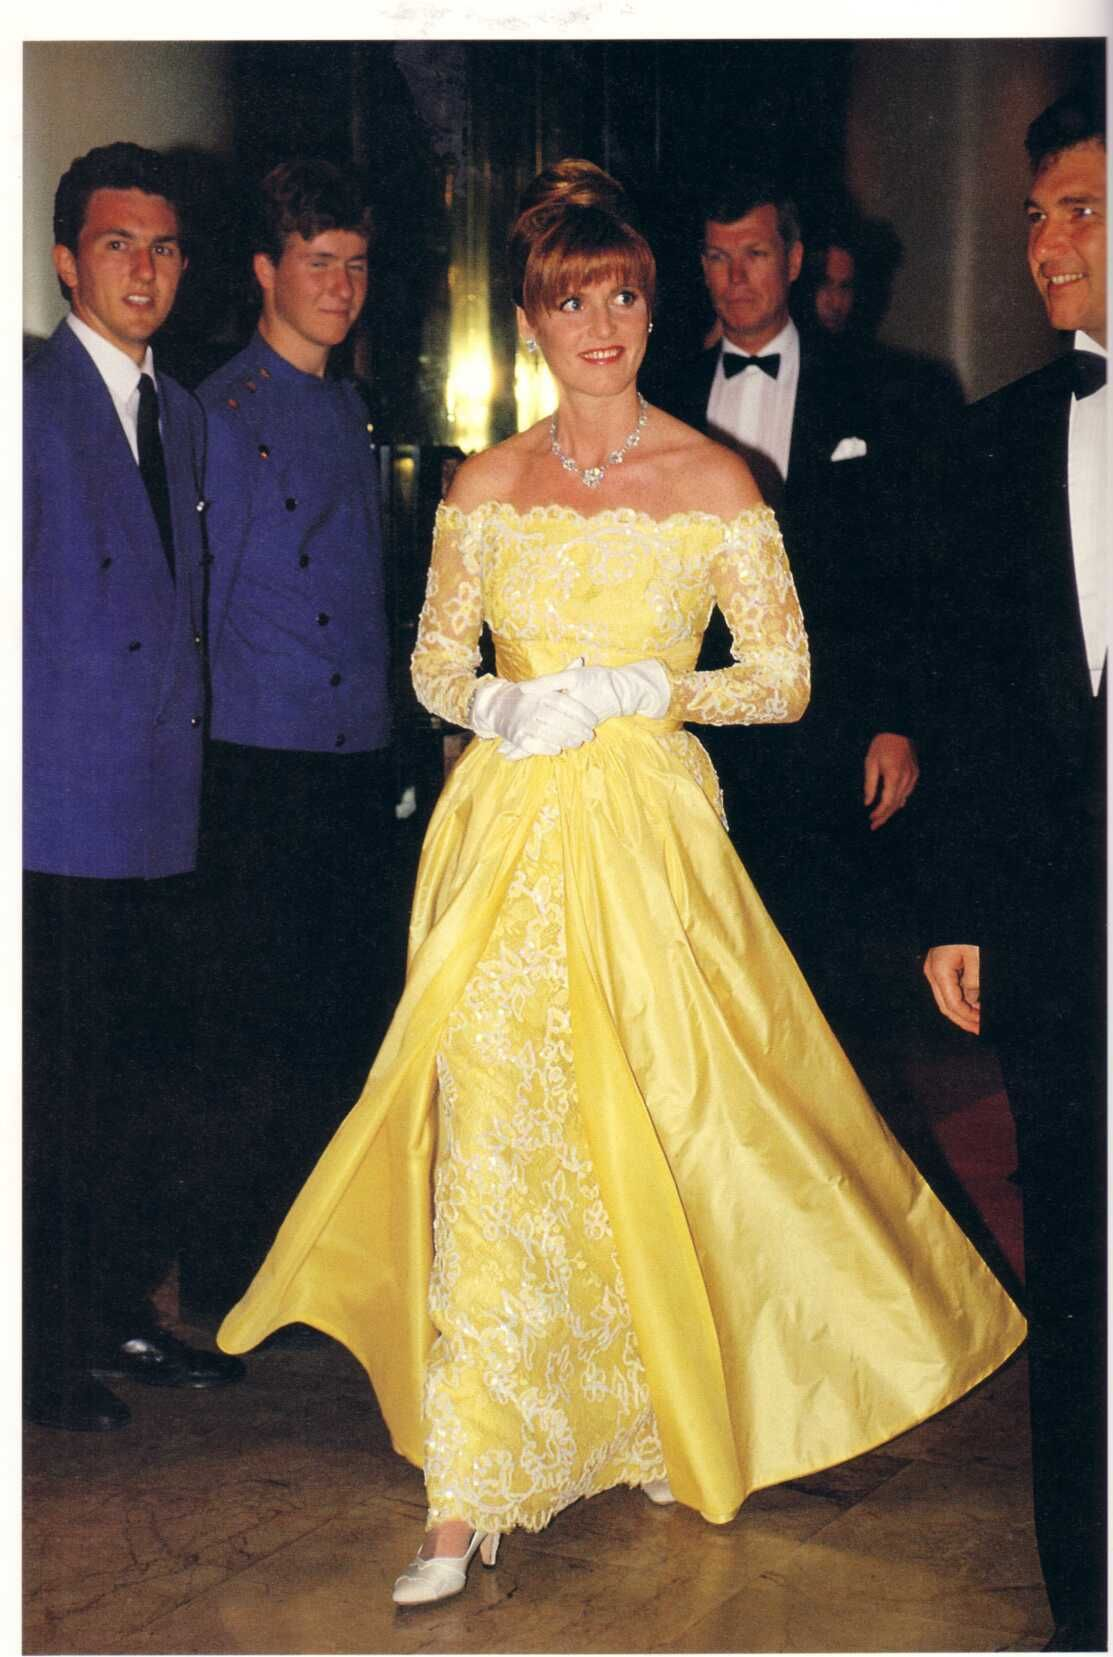 Sarah Ferguson, the Duchess of York. Diseños de vestido